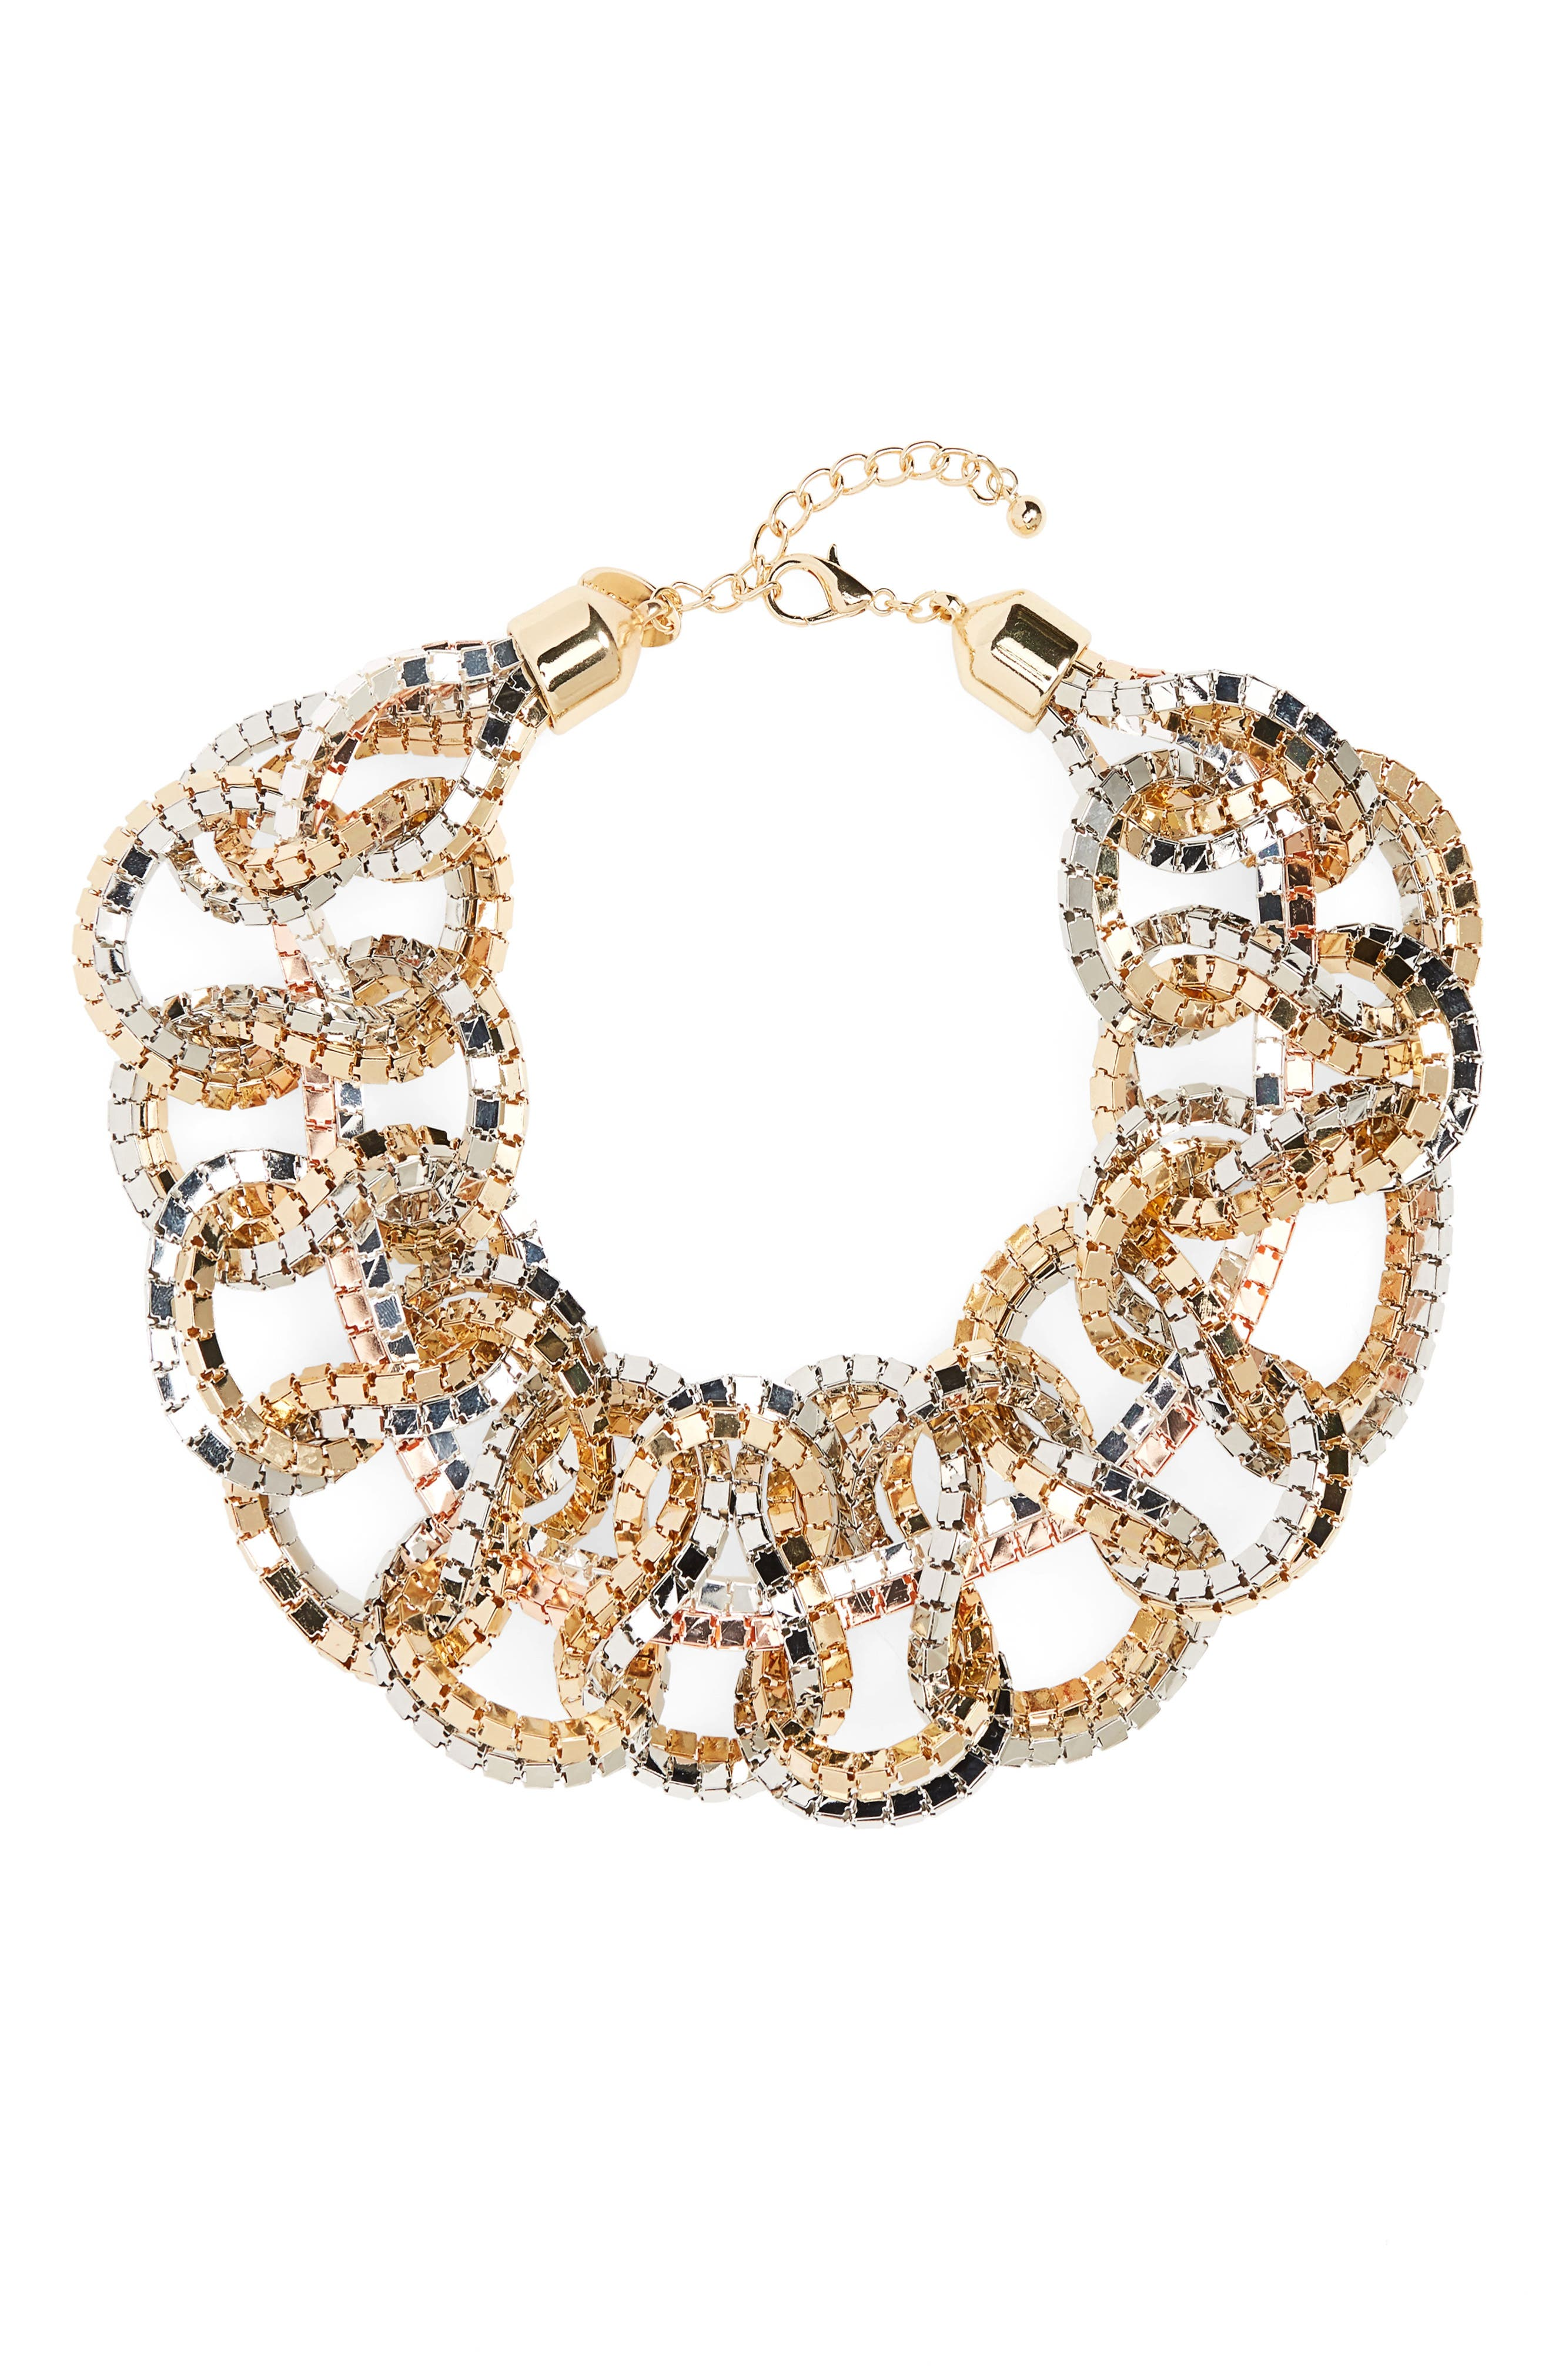 Main Image - Natasha Box Chain Bib Necklace